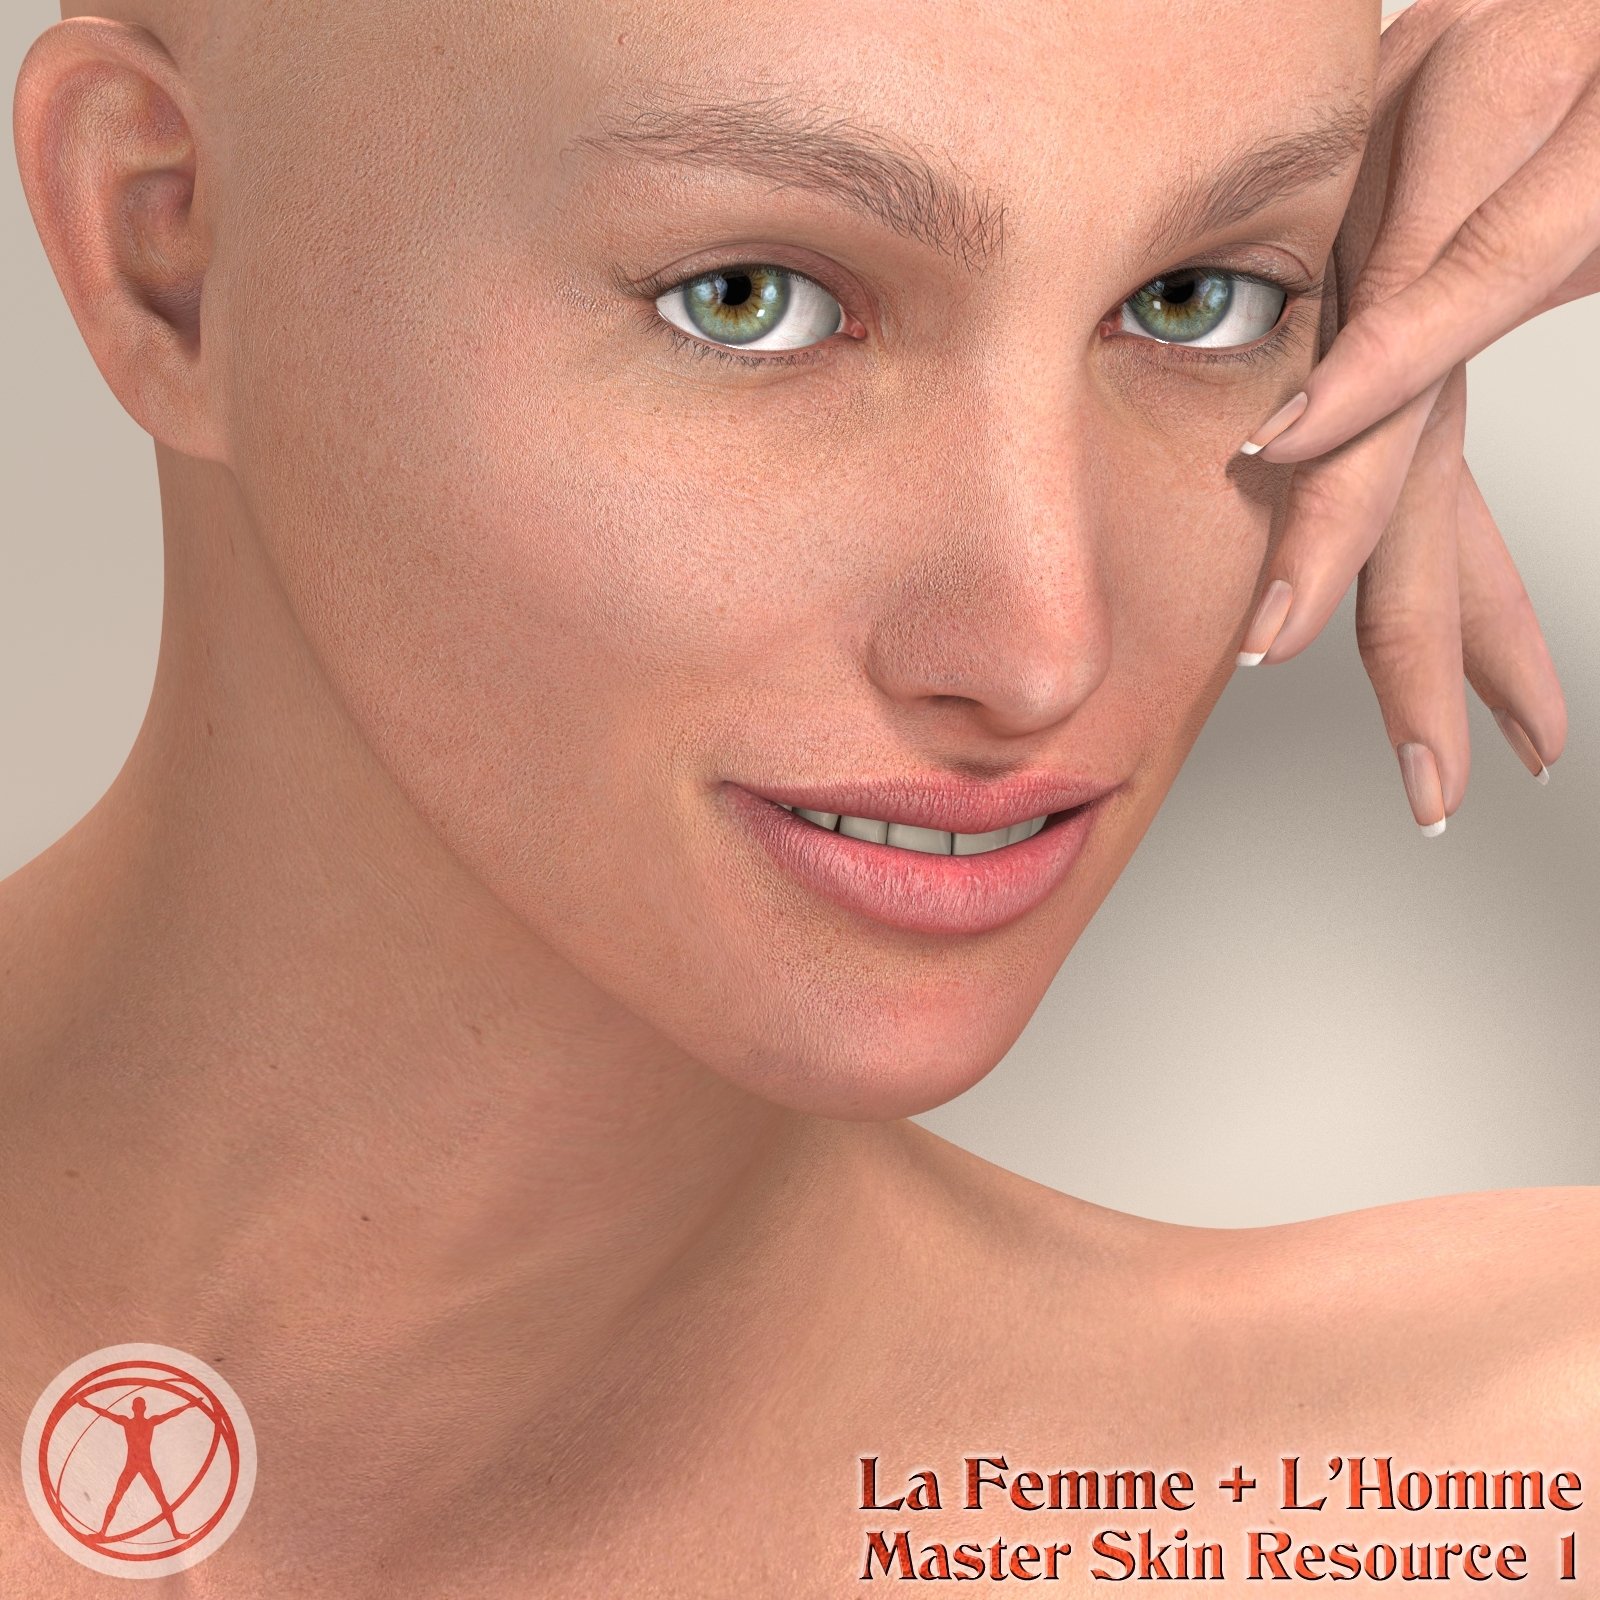 La Femme + L'Homme - Master Skin Resource 1 by 3Dream